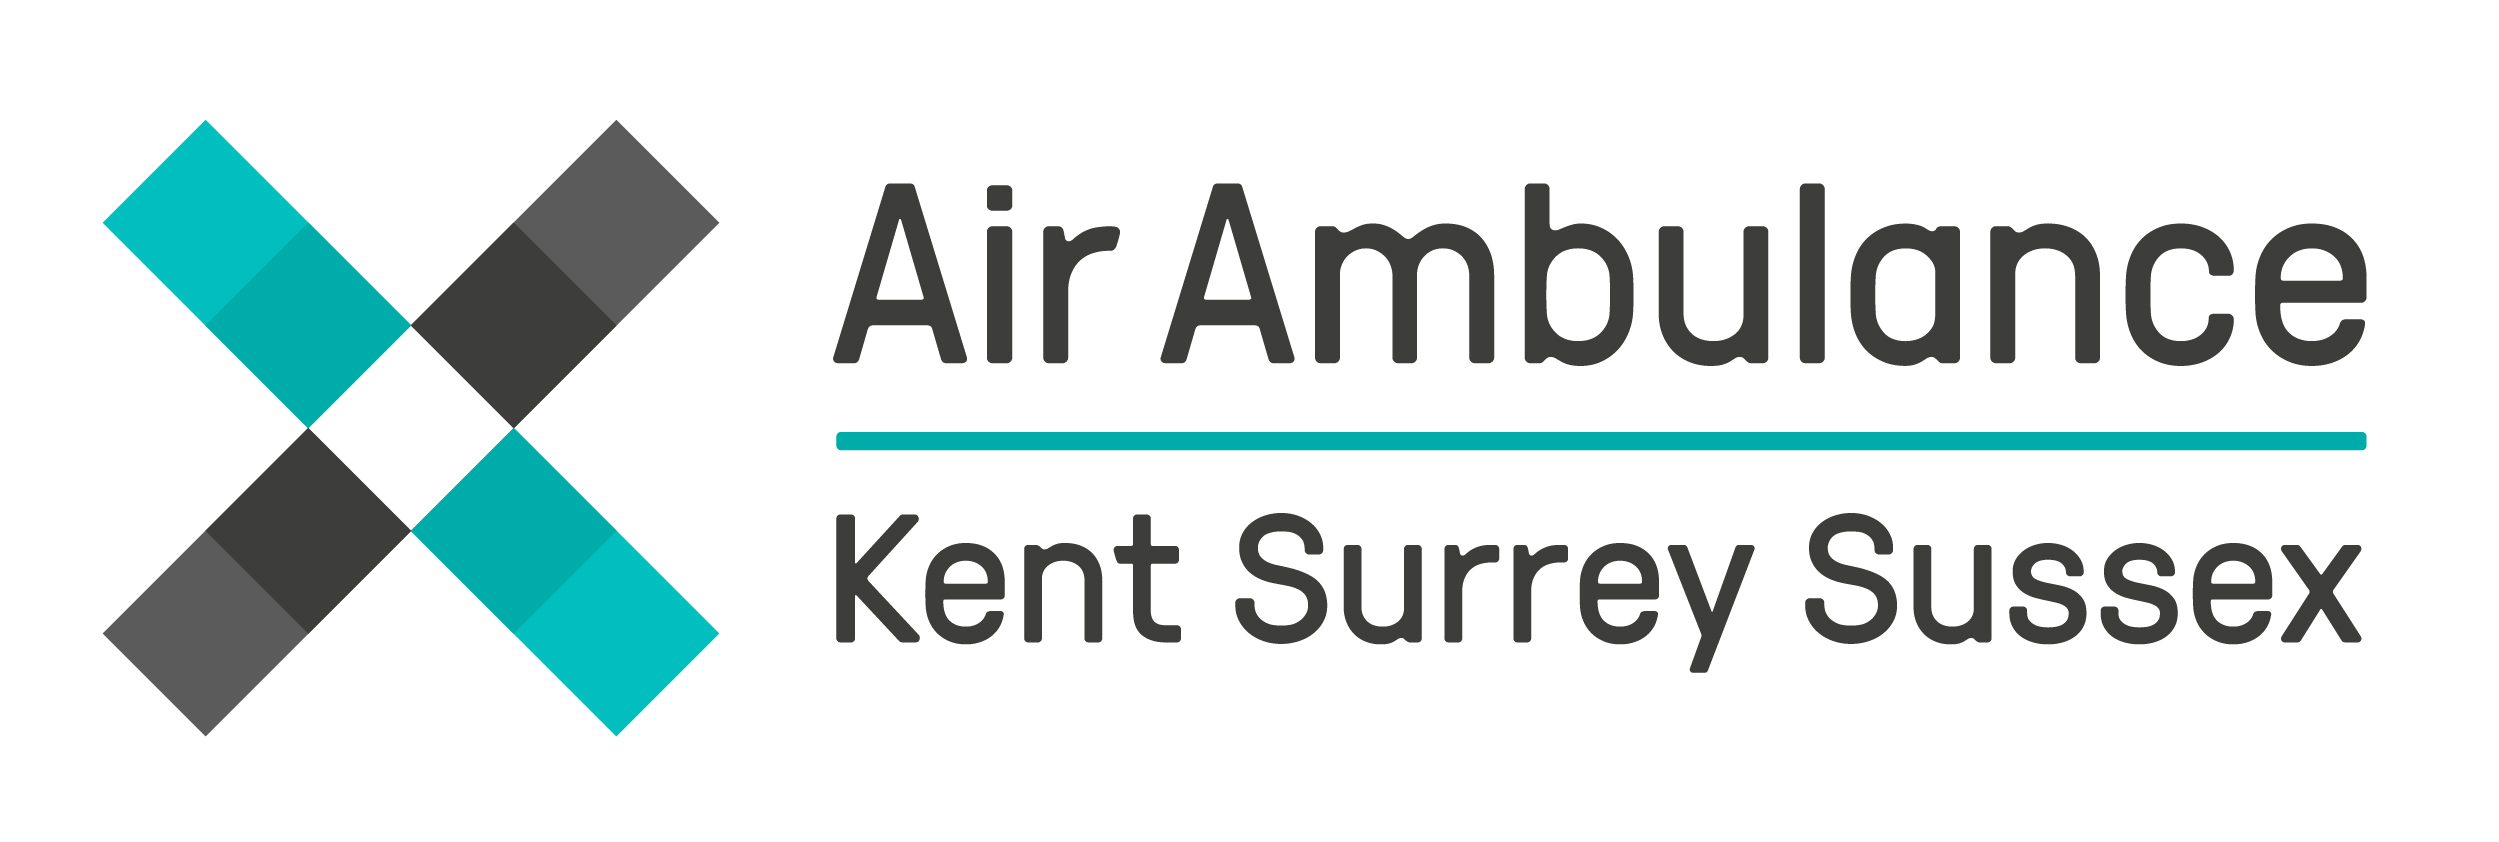 Air Ambulance Kent Surrey Sussex Communications Trustee Wanted